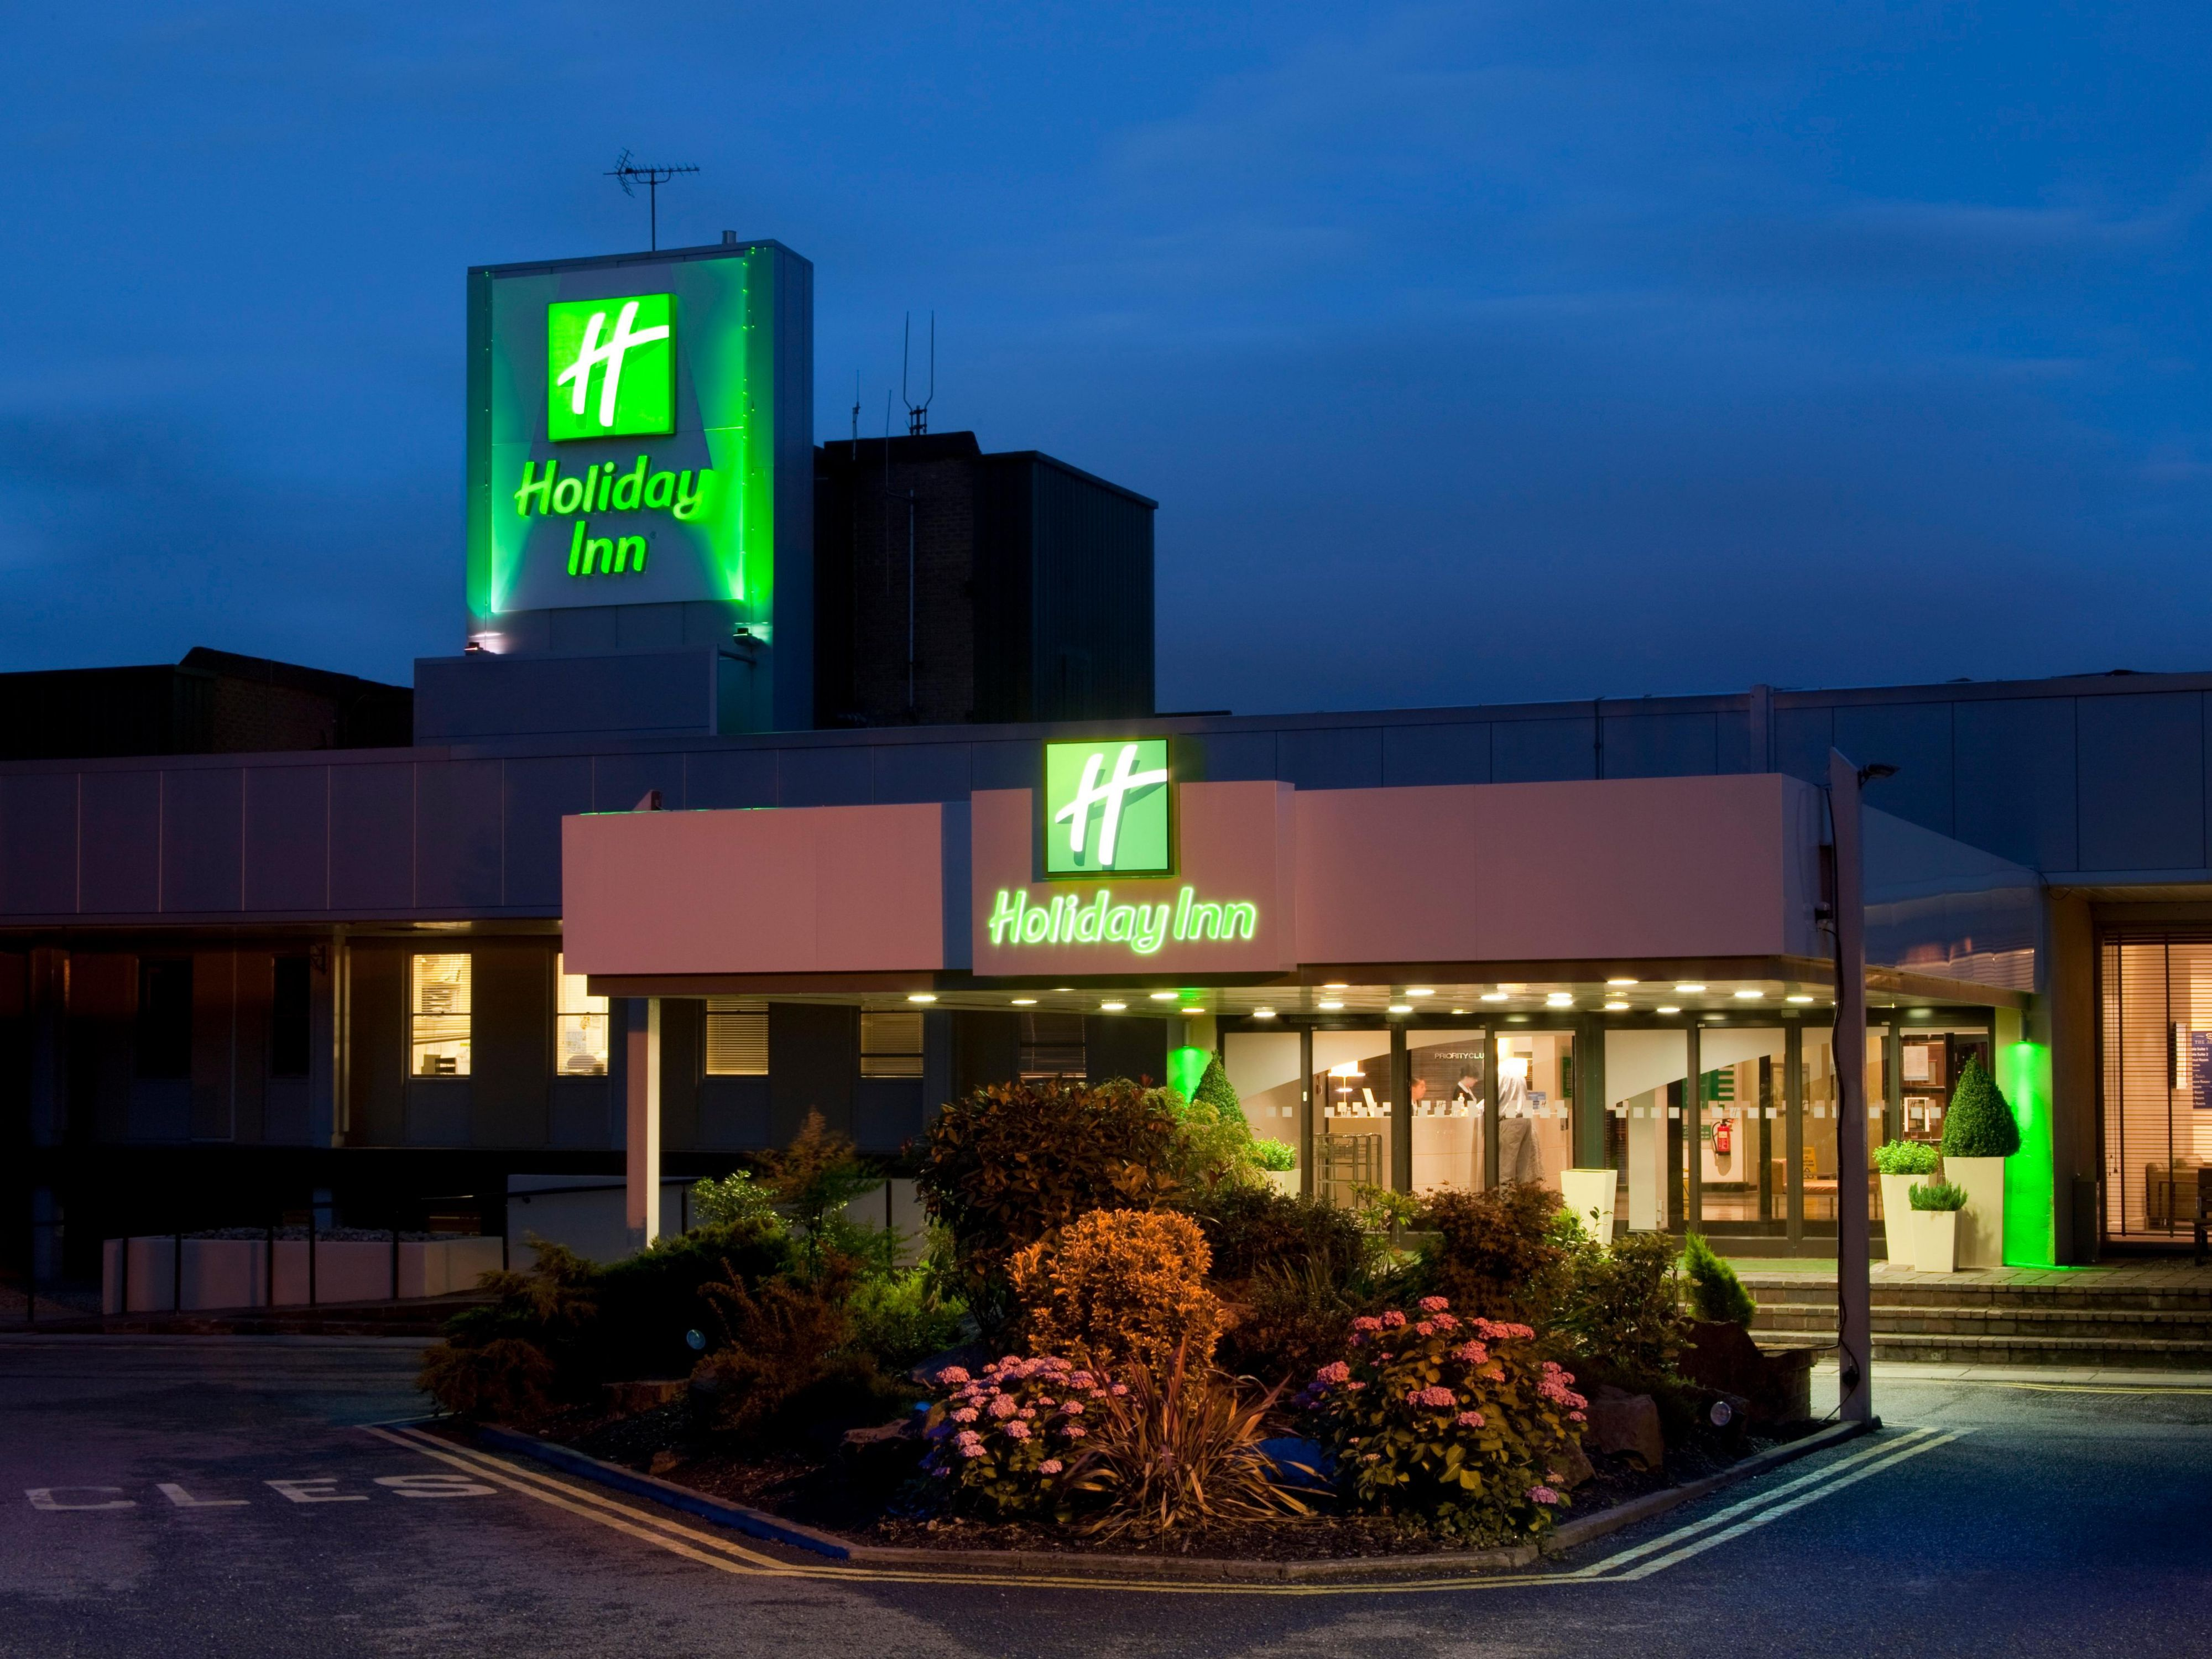 Welcome to the Holiday Inn Bristol Filton